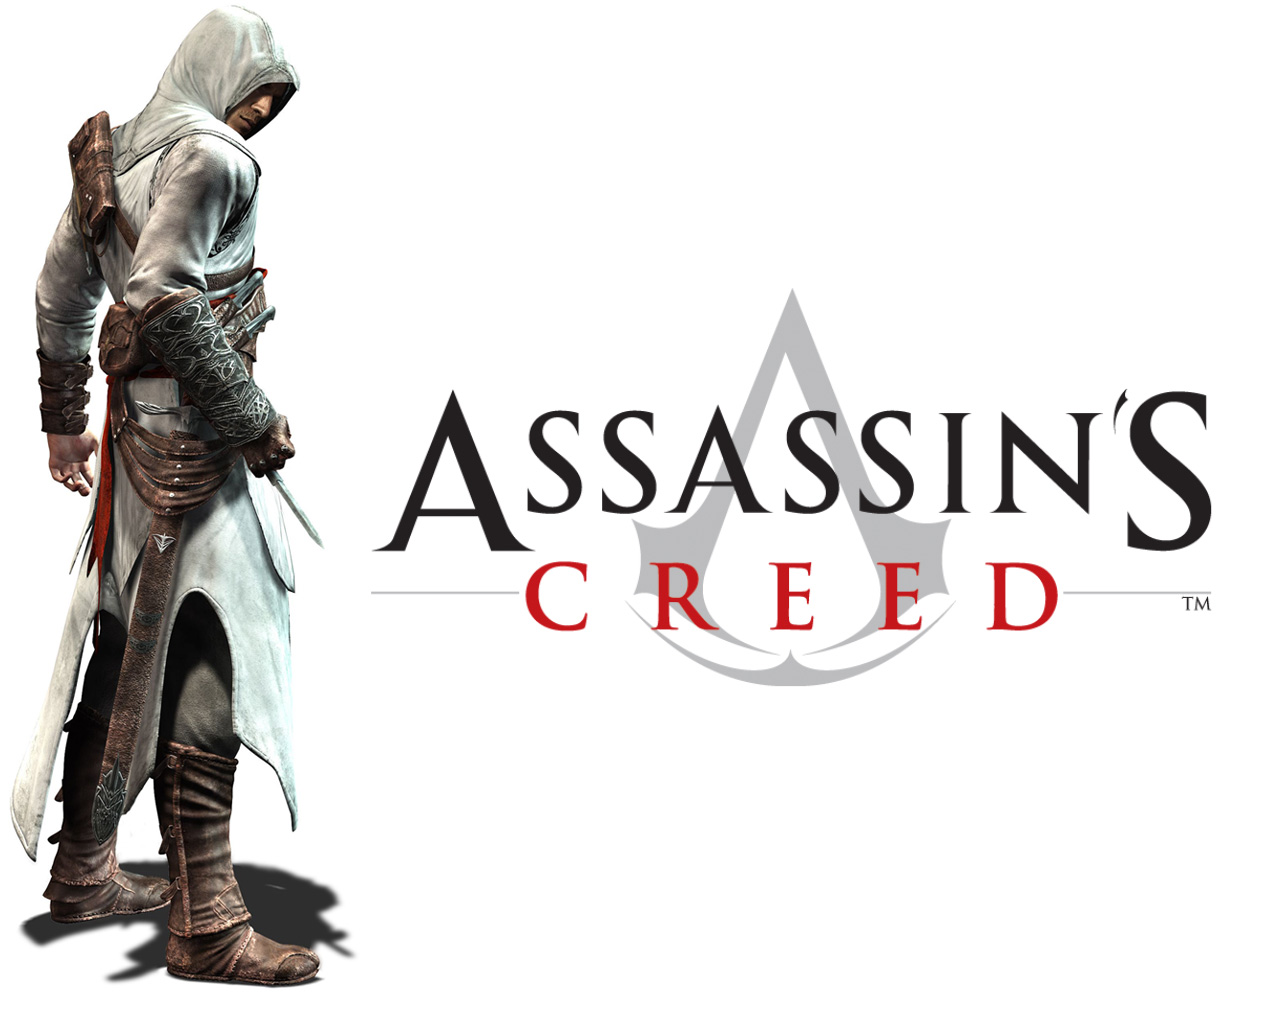 http://3.bp.blogspot.com/-QTfN5LAzRCg/Thh1Gz_nt4I/AAAAAAAAF80/-sQI8yUYx4A/s1600/assassin%2527s-creed-wallpaper-hd-16.jpg